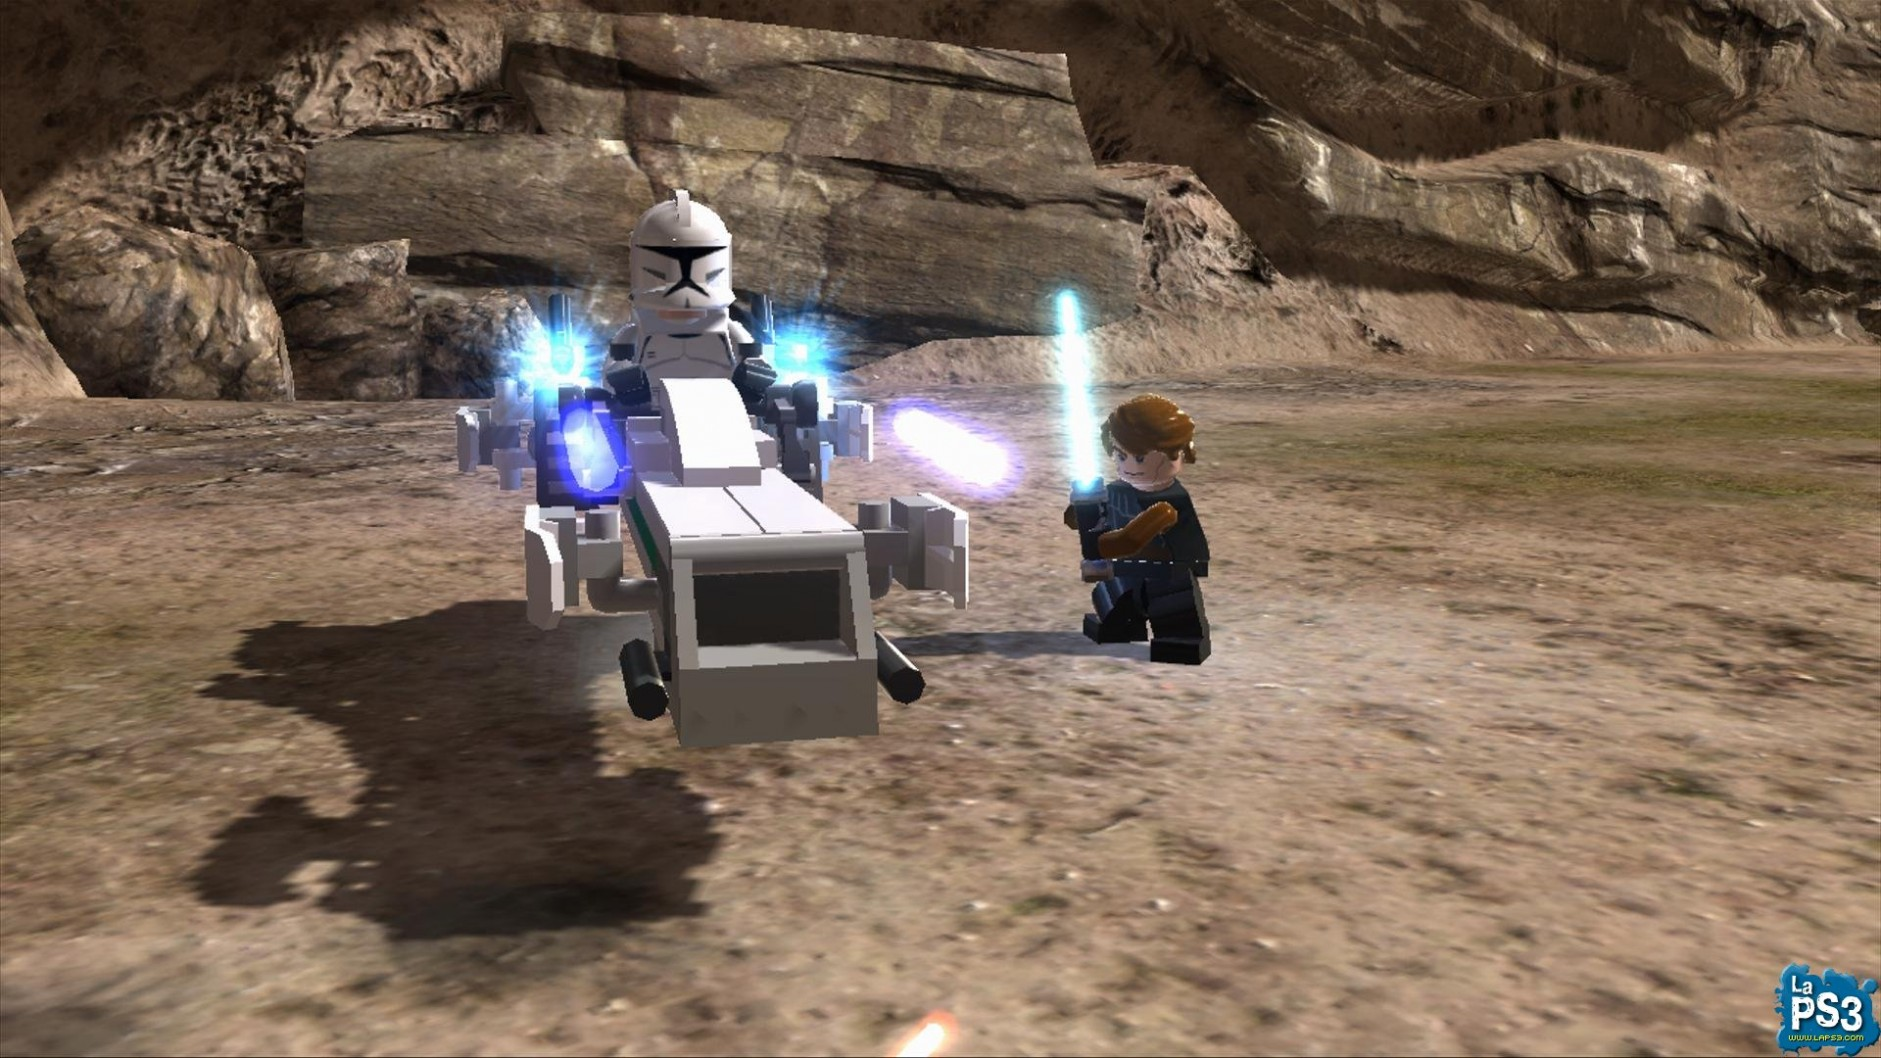 lego star wars 3 the clone wars free download  ocean of